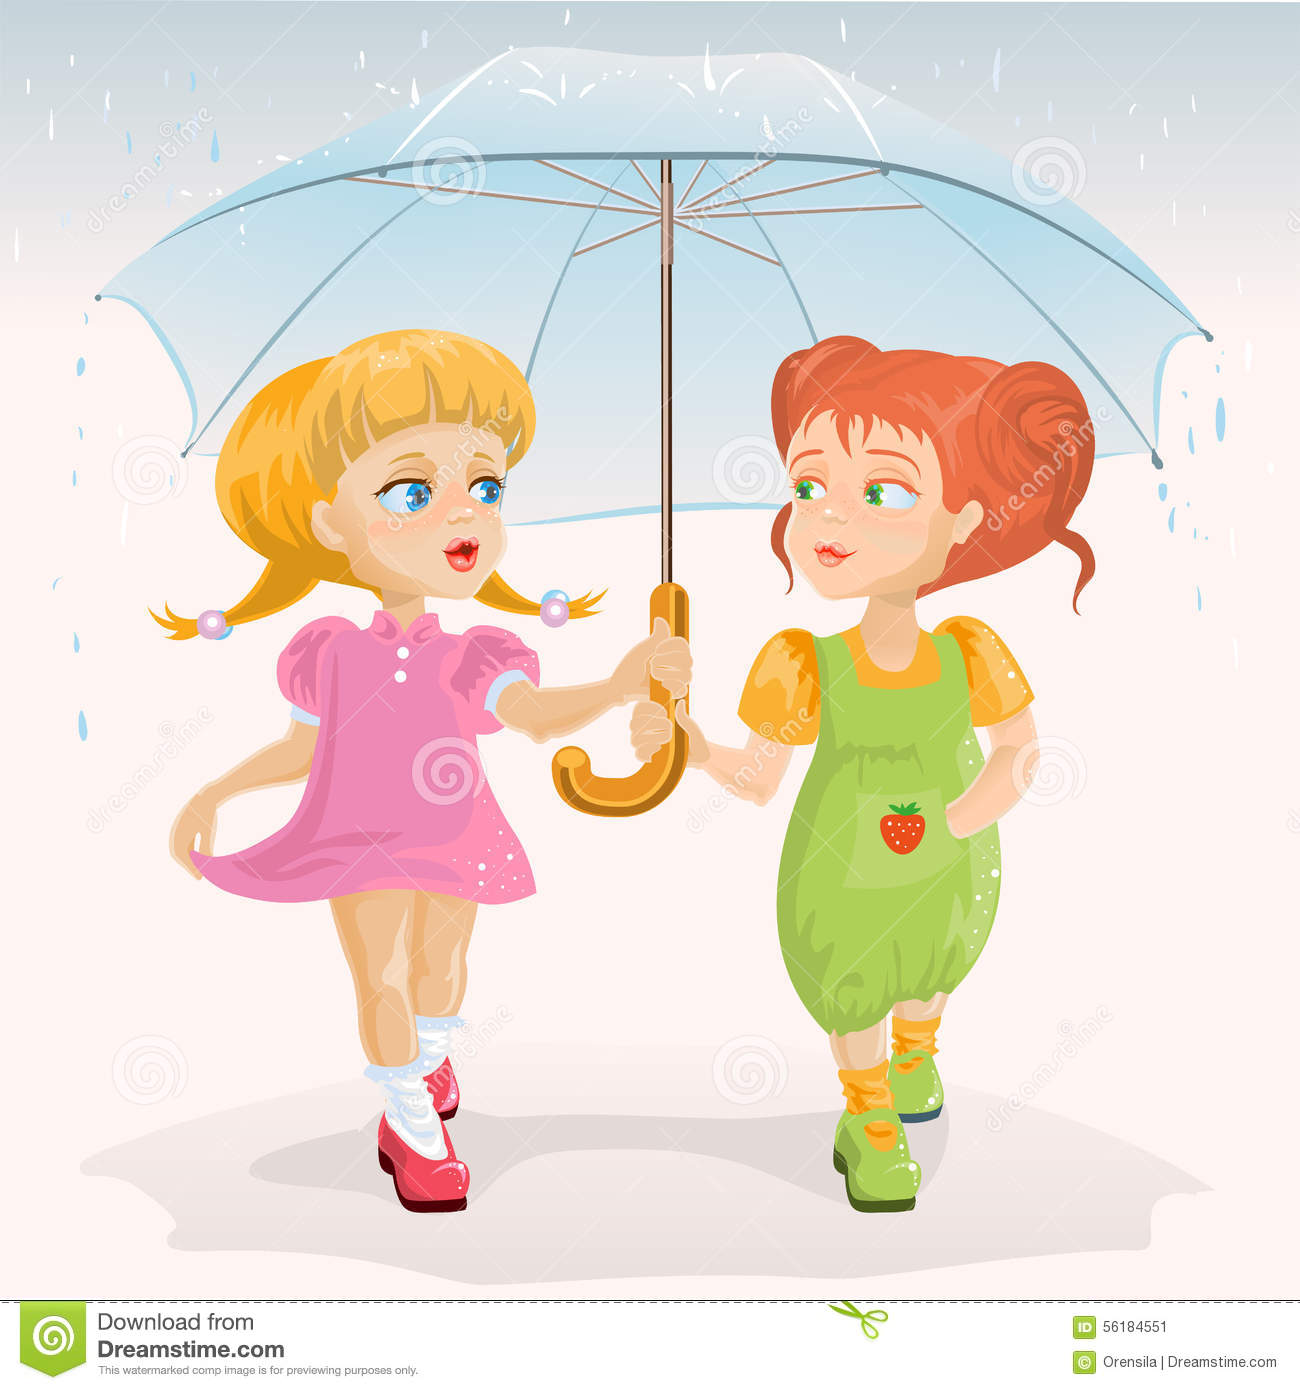 Two Friends Holding Umbrella Template Greeting Card Friendship Day Stock Vector Illustration Of Couple Holding 56184551